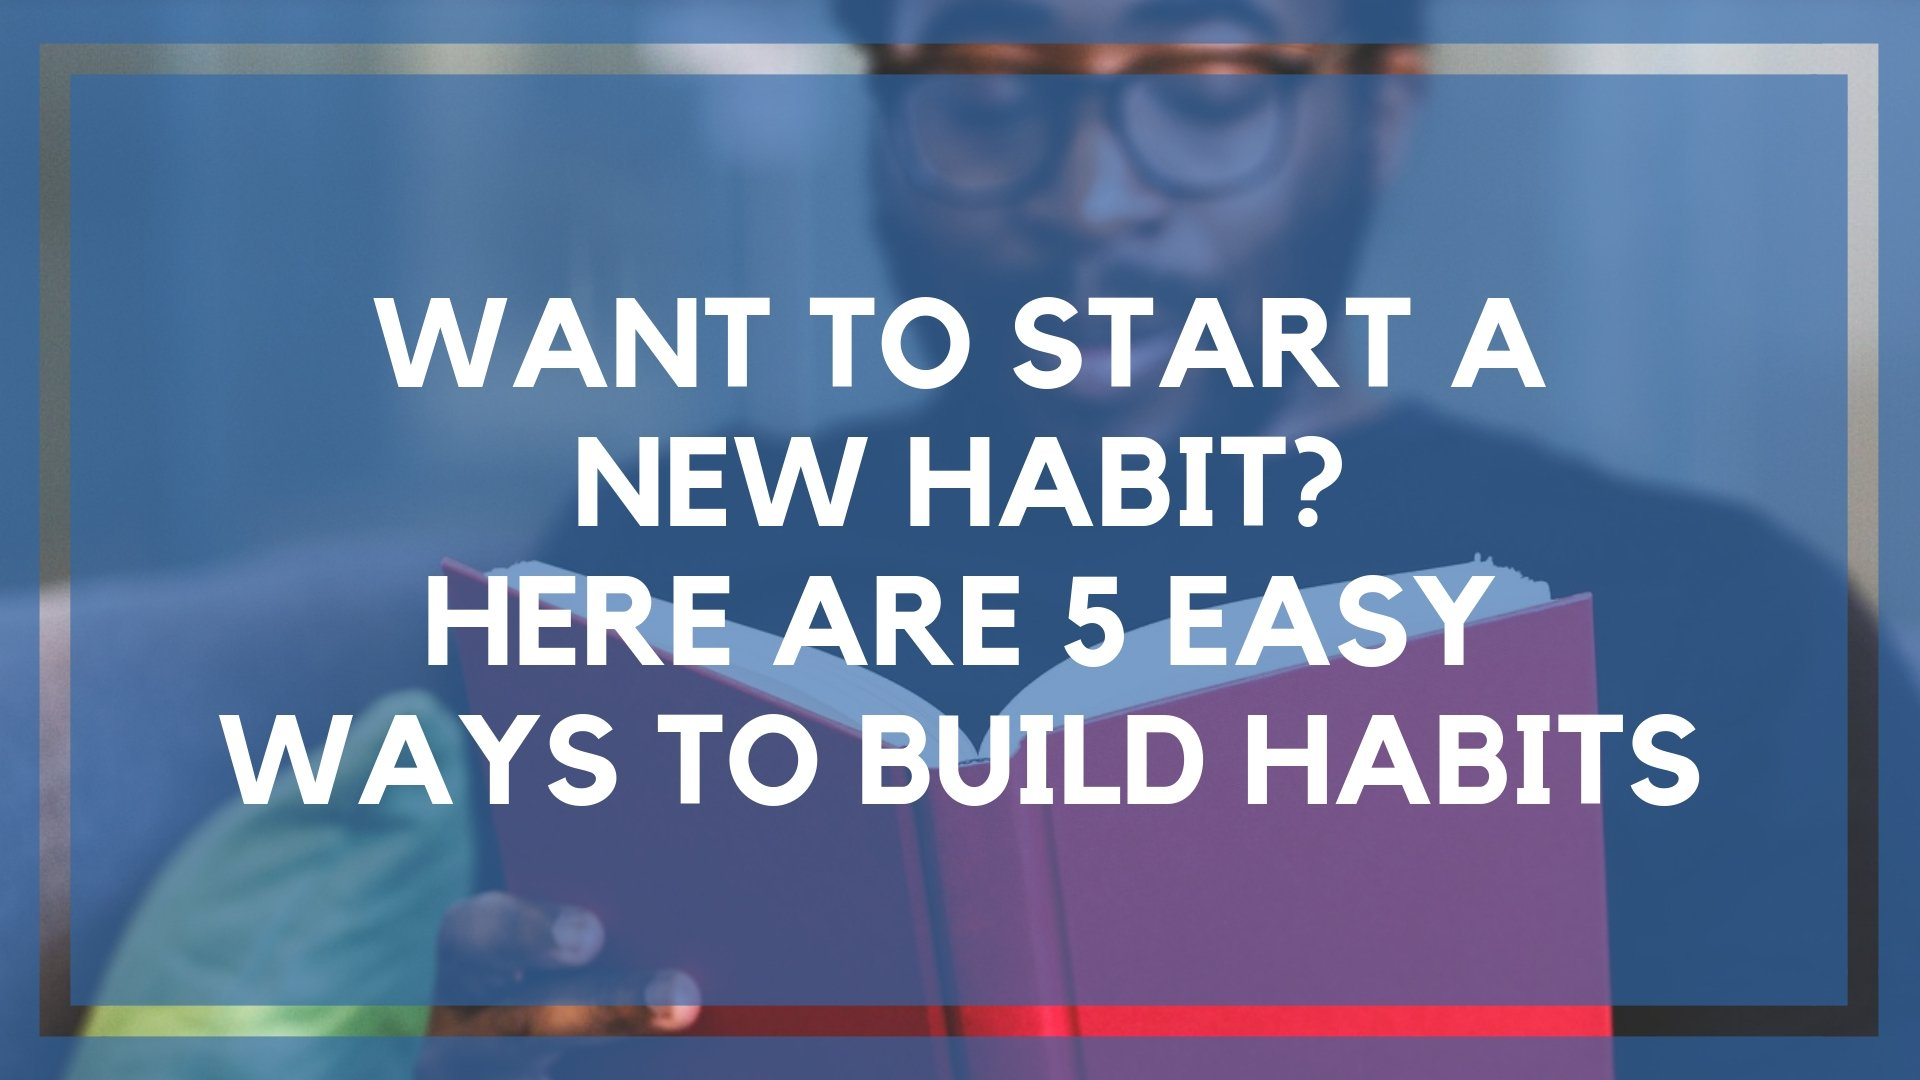 Want to Start a New Habit? Here are 5 Easy Ways to Build Habits